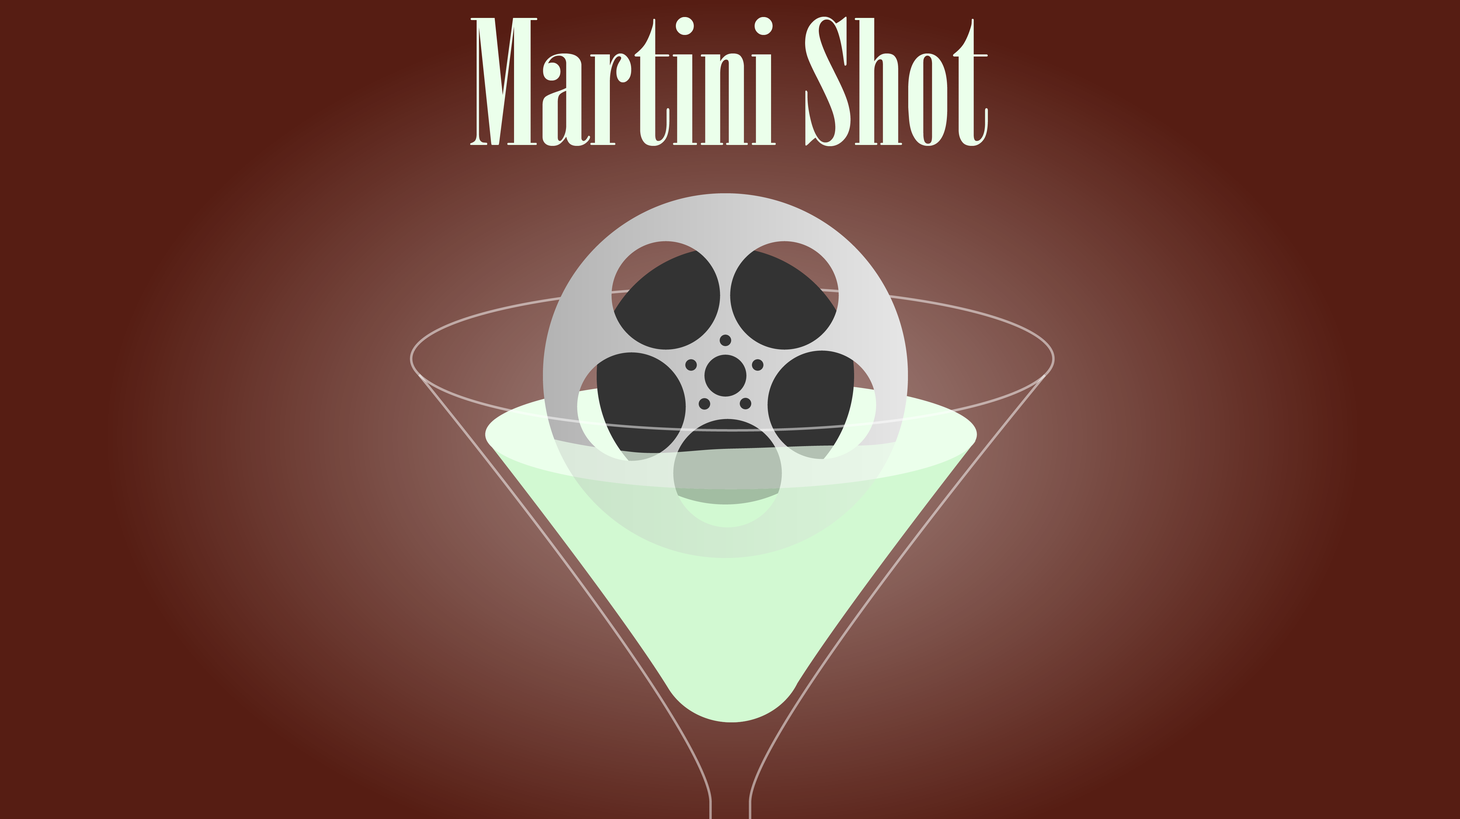 On today's Martini Shot I go public with my New Year's resolution, which is to be a little bit smarter than a tiny baby.